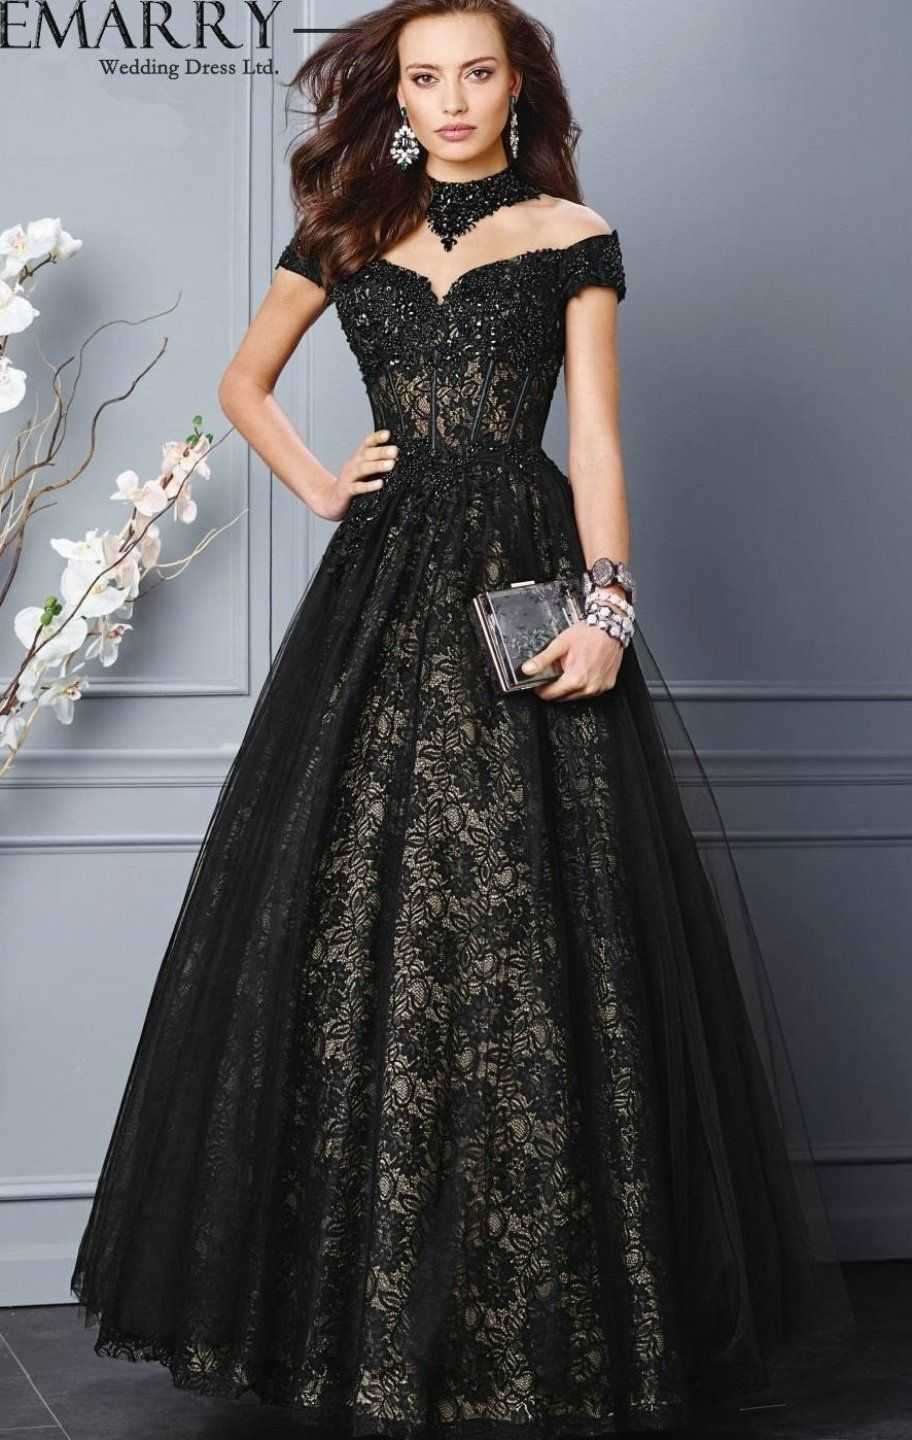 A 136 On Sale Ball Gown Black Lace Evening Gowns 2015 Eveningdresses Casualeveningdress Eveningdressesfashion In 2020 Black Ball Gown Evening Dresses Gowns